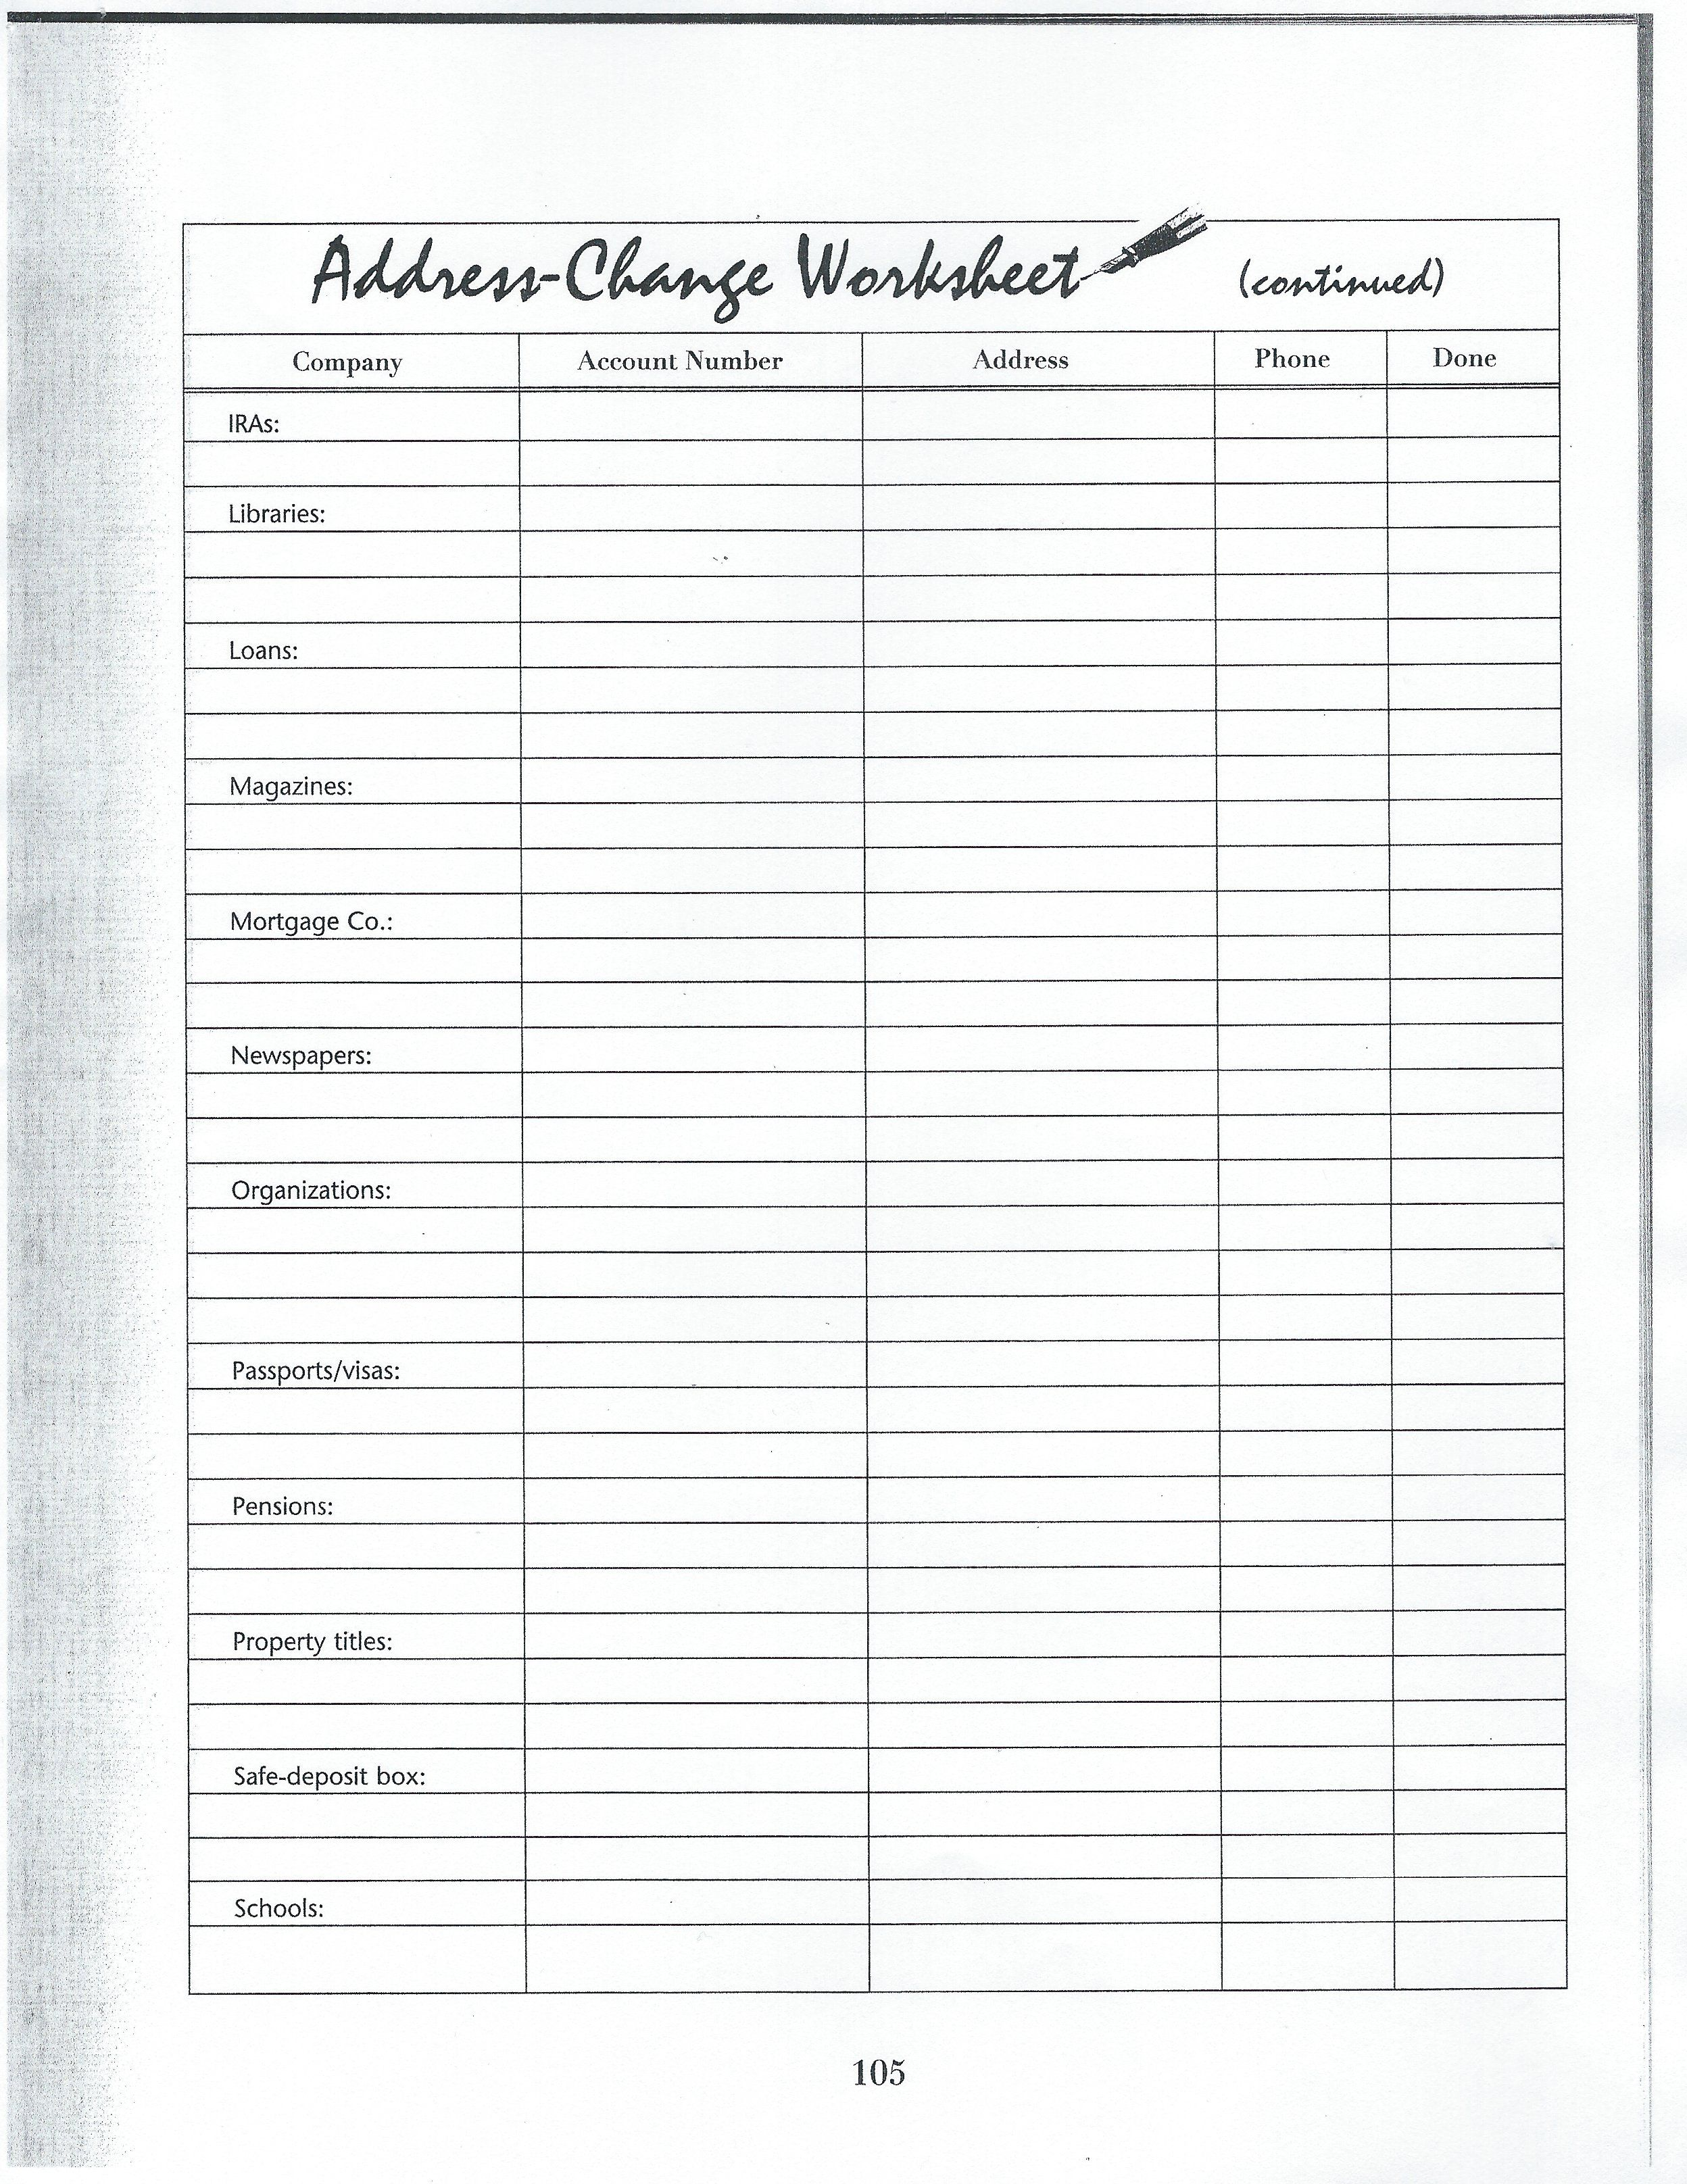 Address Change Worksheet 3